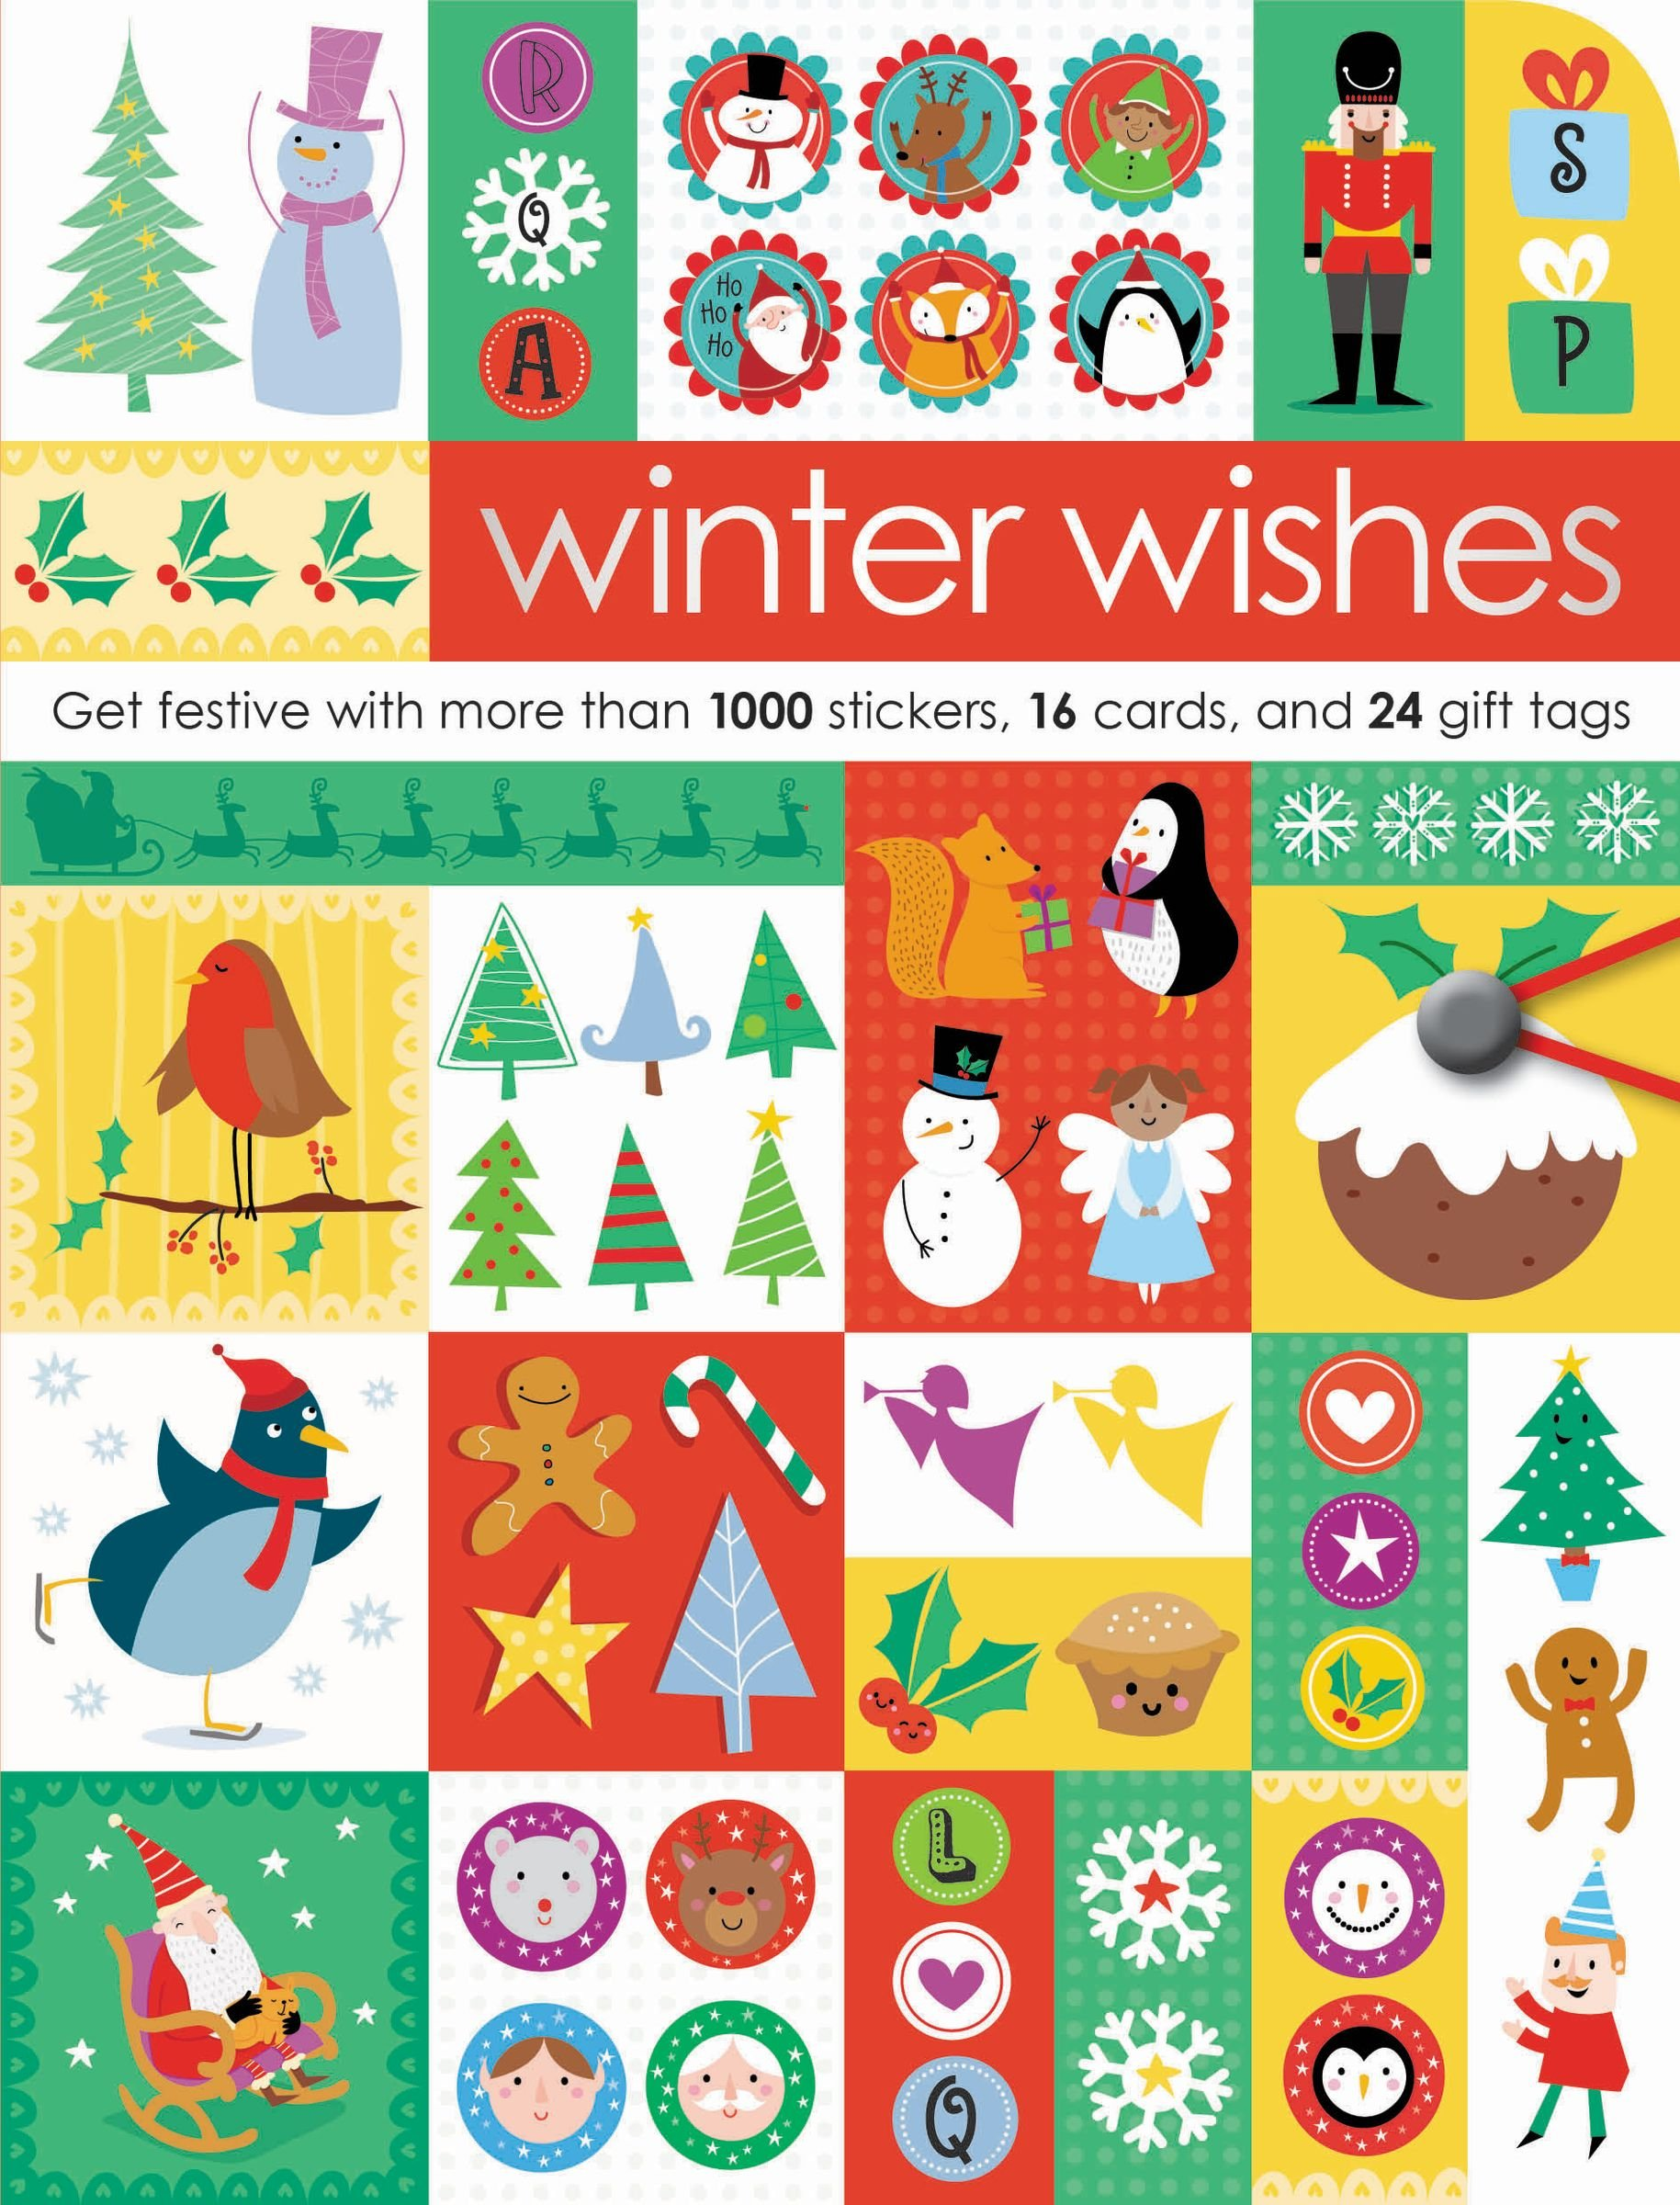 Winter Wishes: Get Festive With More Than 1000 Stickers, 16 Cards, and 24 Gift Tags (Sticker Chic) pdf